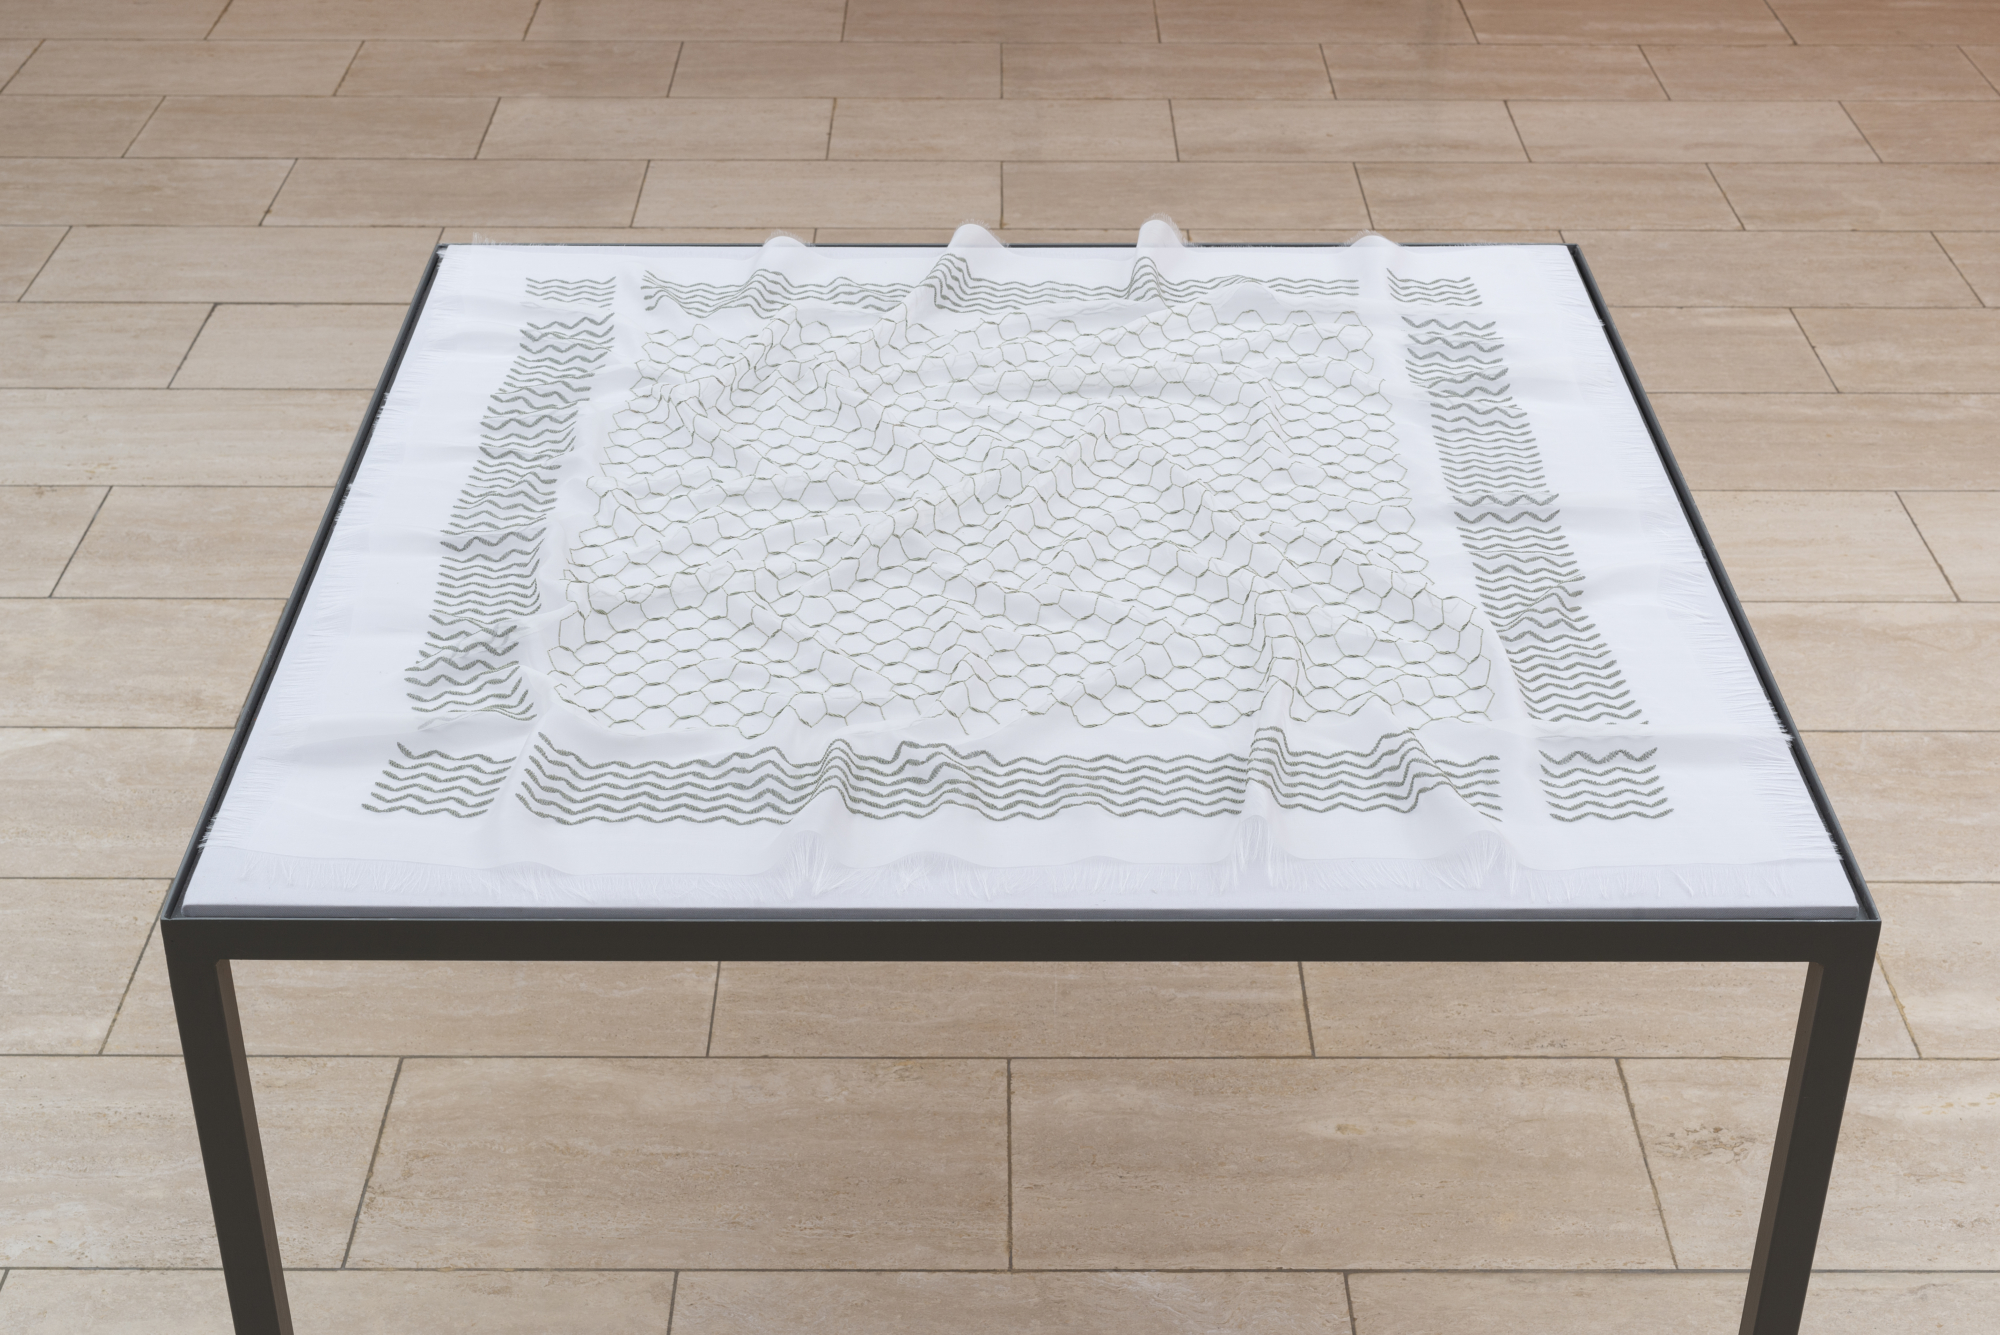 Keffieh II by Mona Hatoum looks like a typical Palestinian scarf, but if you look closer, you can see a sophisticated fabric of symbols